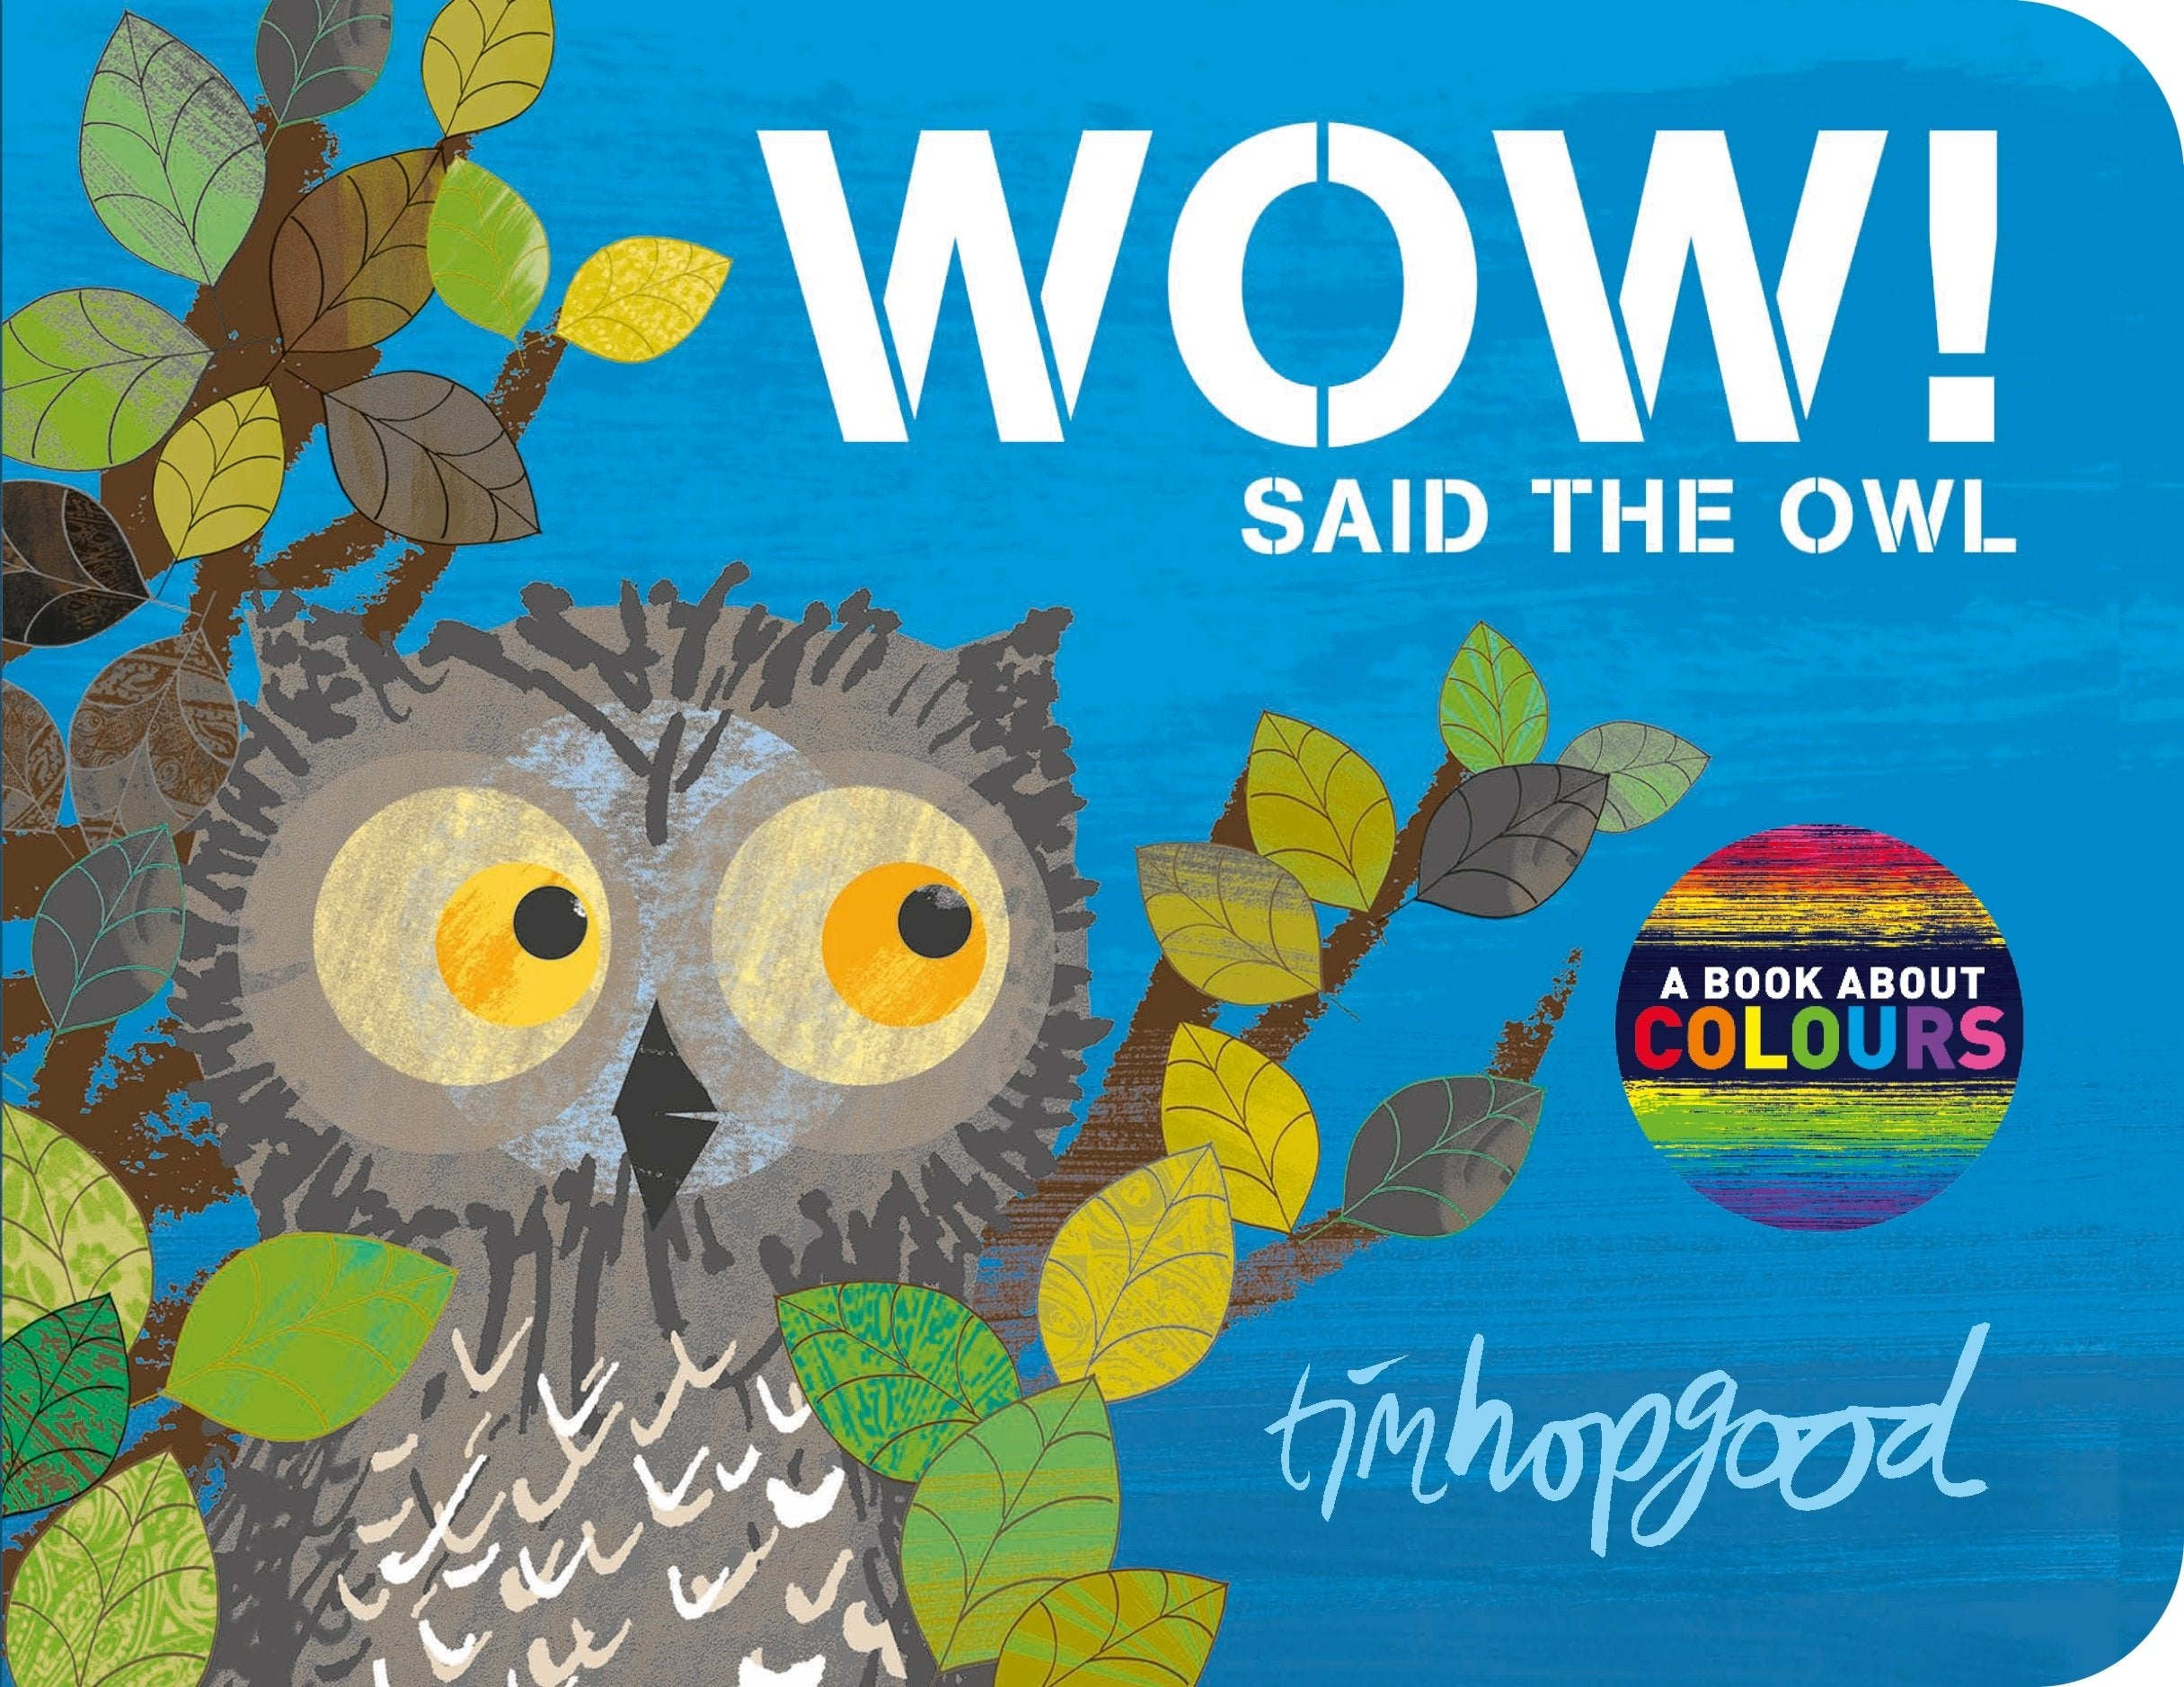 Tim Hopgood: Wow Said the Owl